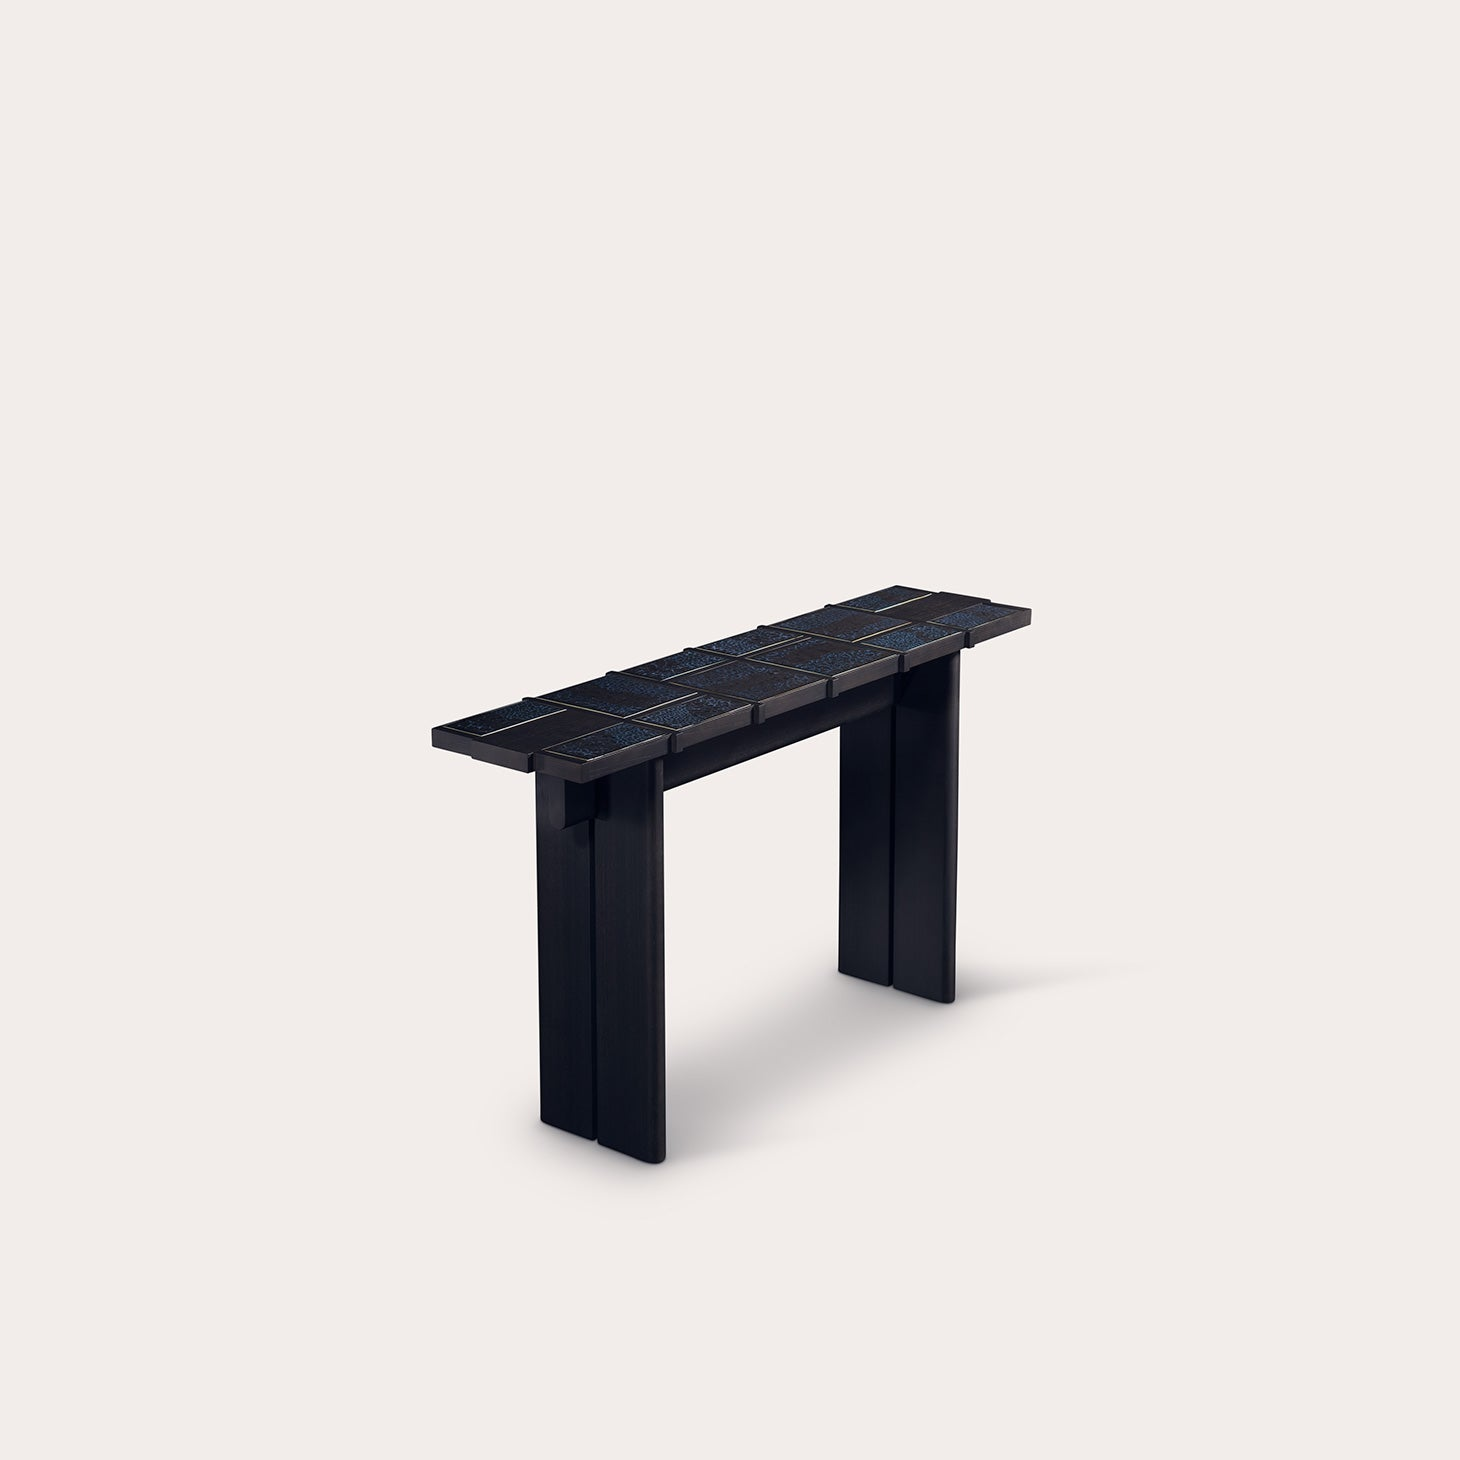 TERZO Tables Bruno Moinard Designer Furniture Sku: 773-230-10040